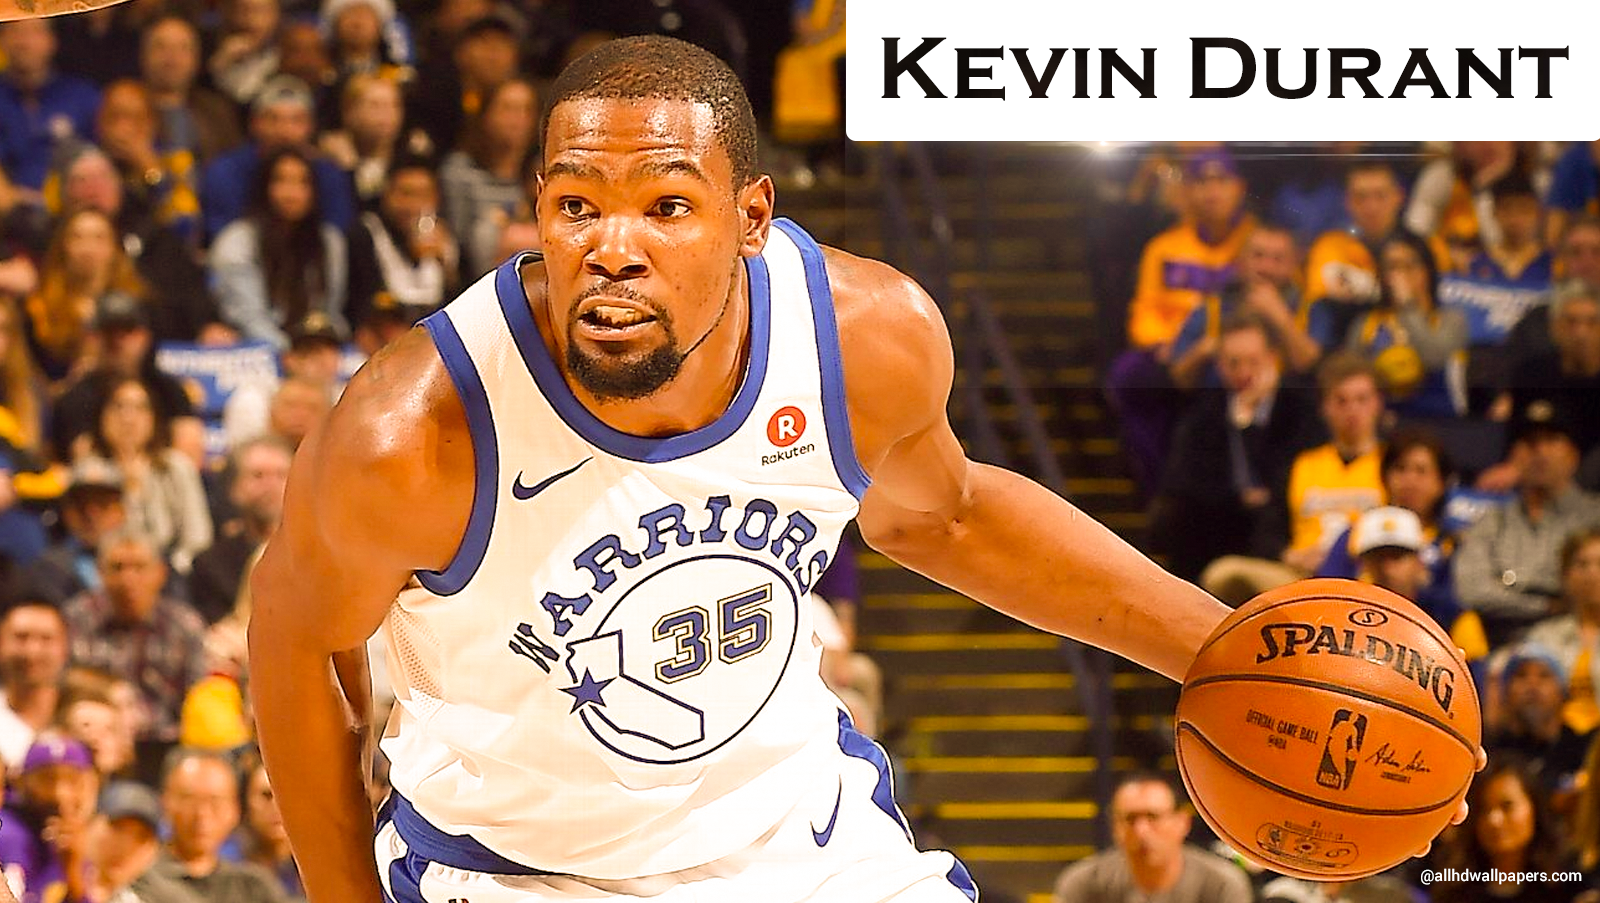 Kevin Durant Player Wallpaper Kevin Durant Wallpaper ...